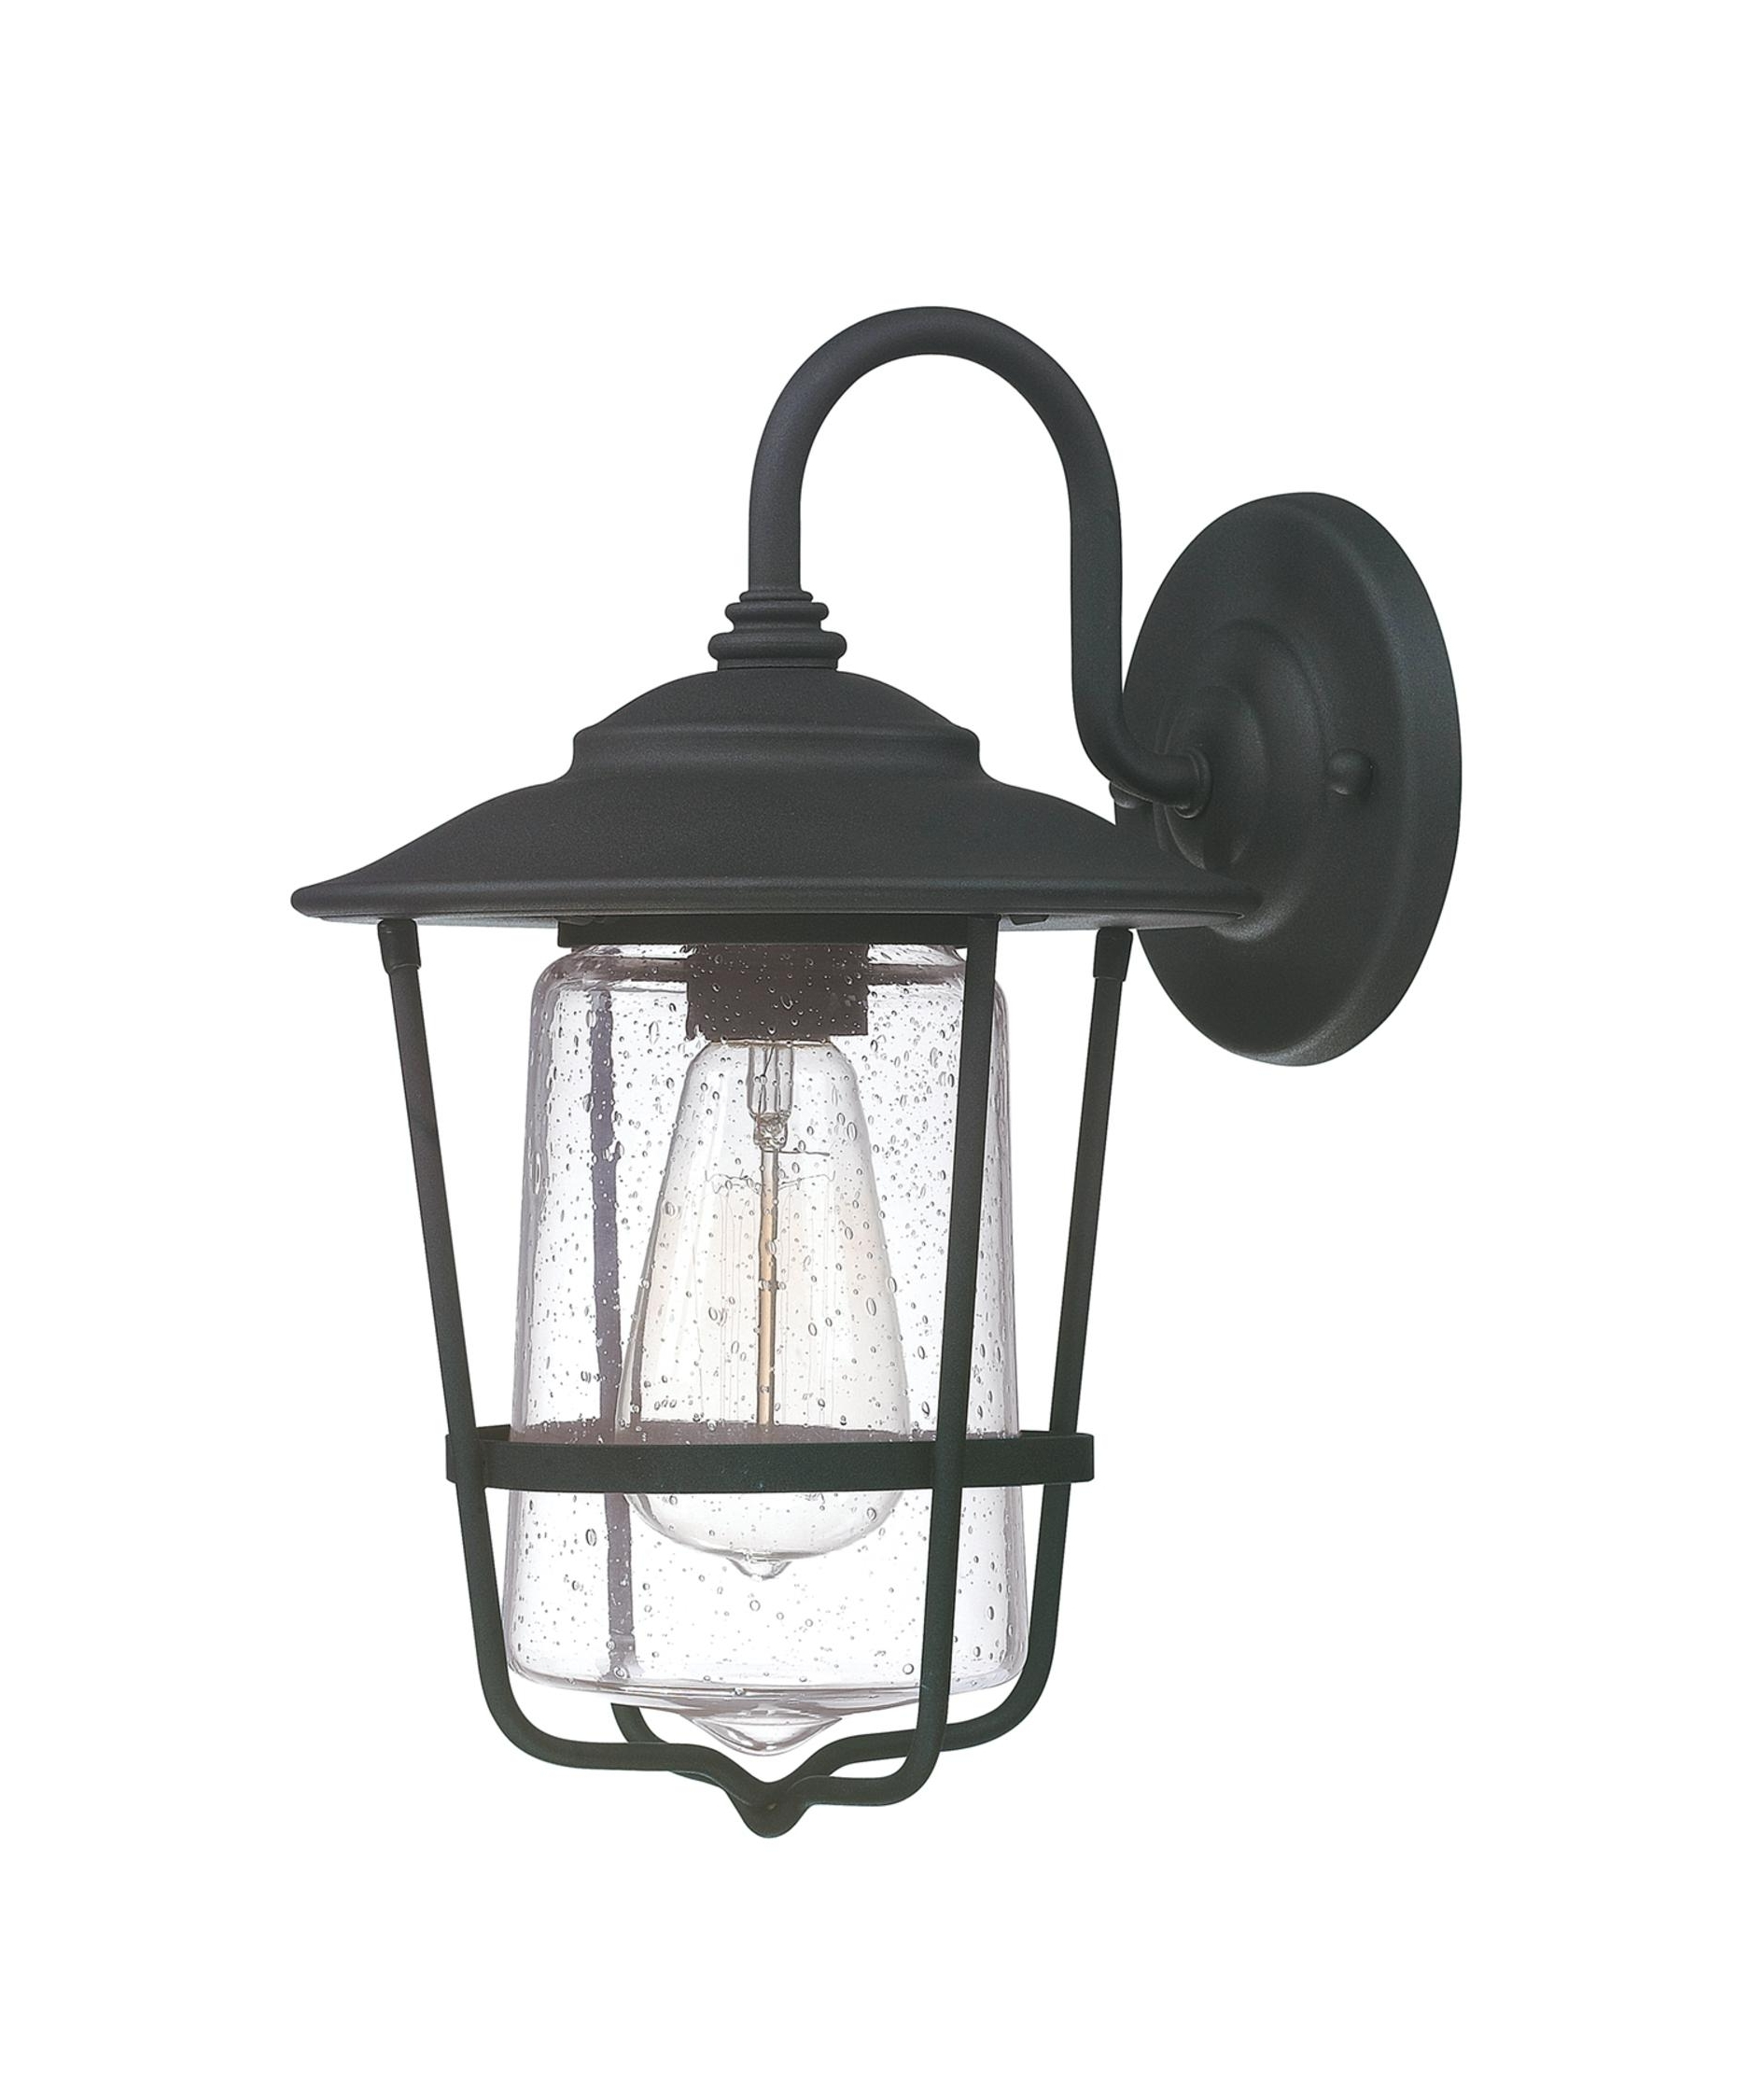 Best And Newest Outdoor Wall Lighting At Houzz For Capital Lighting 9601 Creekside 8 Inch Wide 1 Light Outdoor Wall (View 3 of 20)